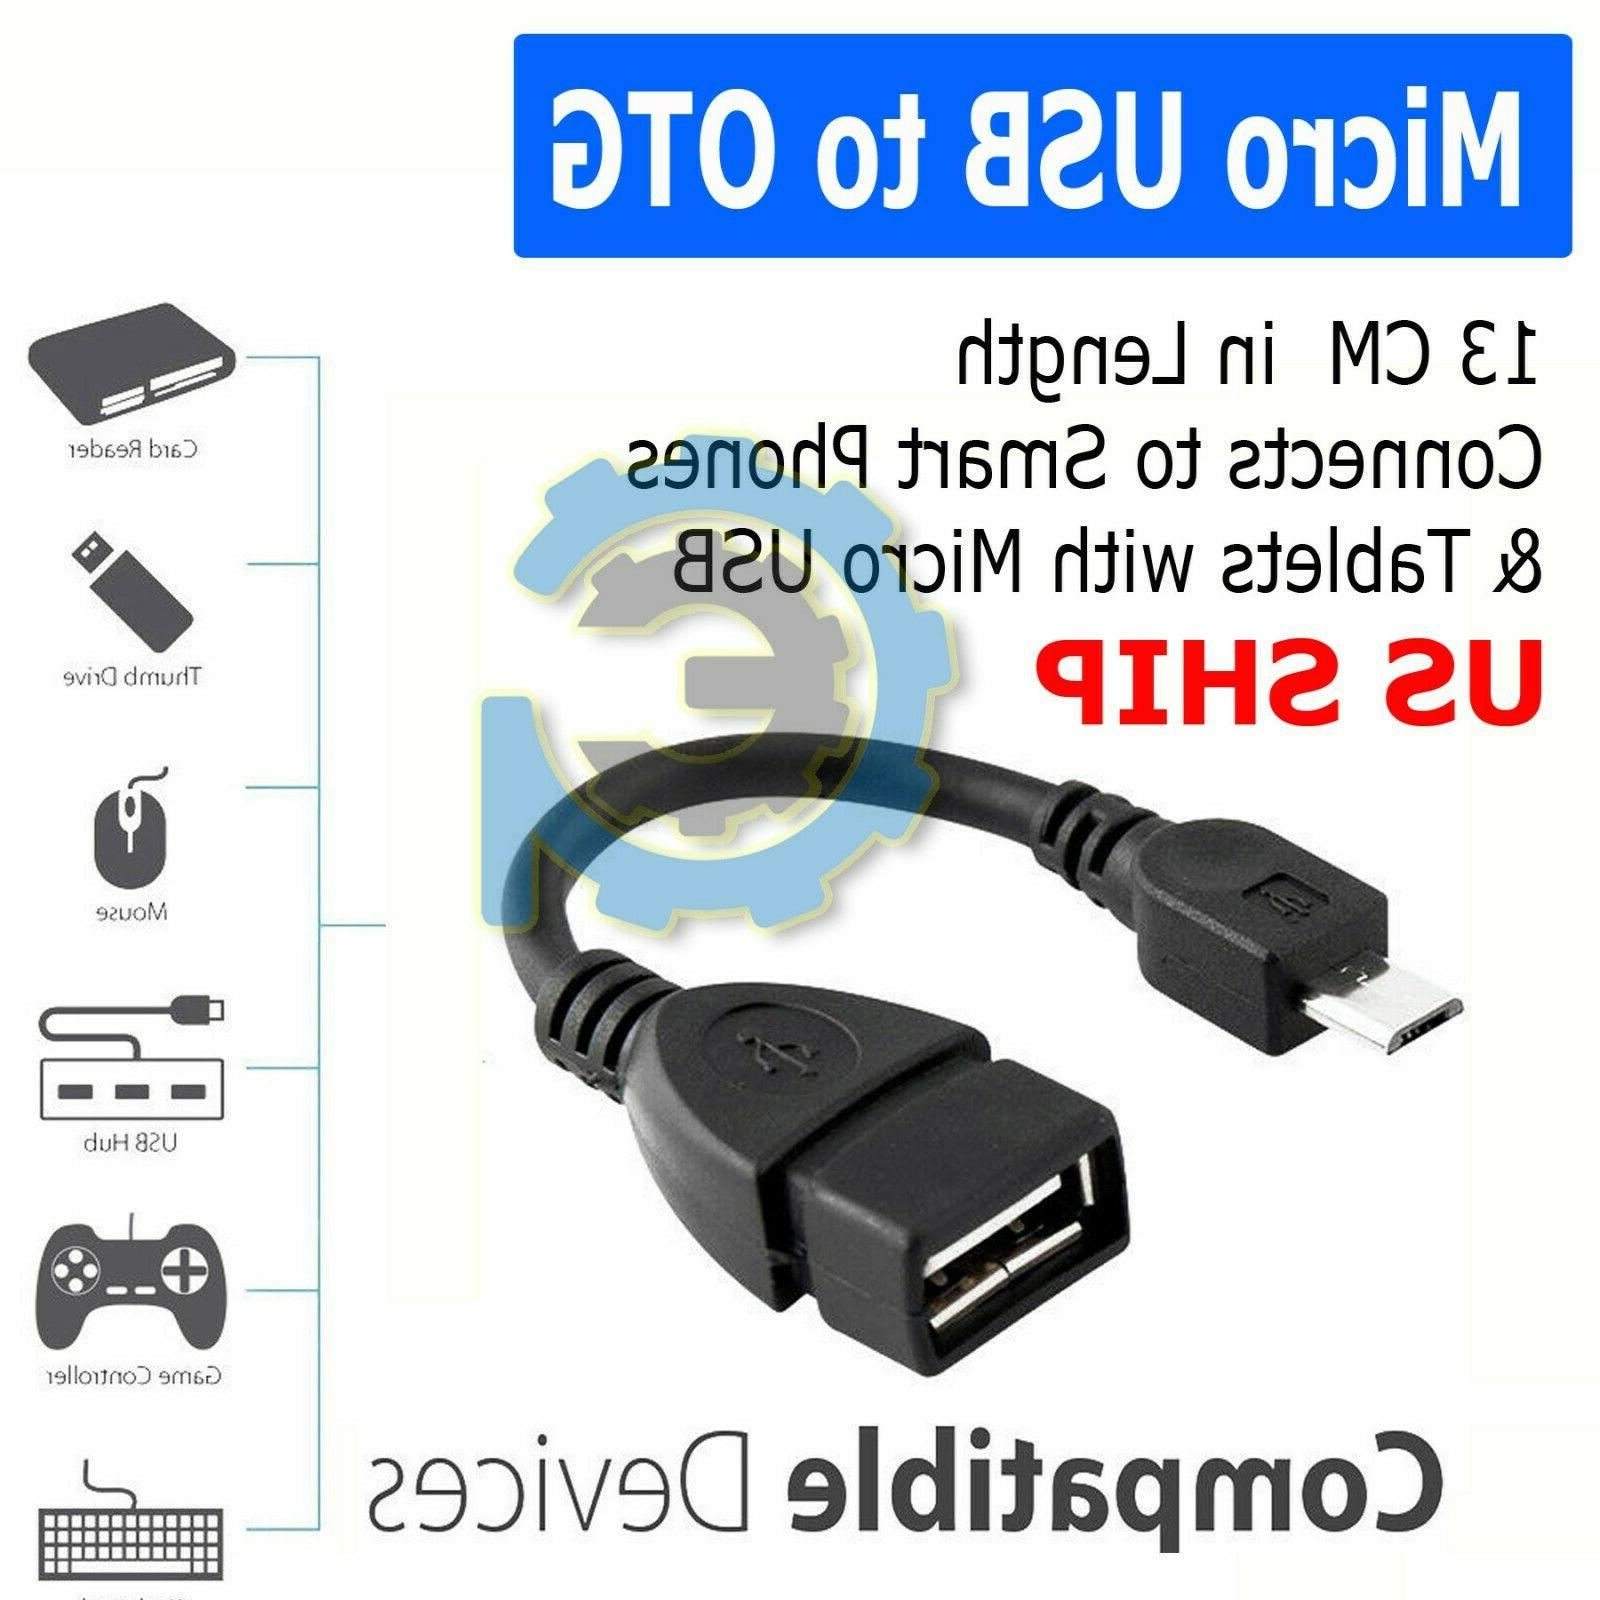 durable micro usb otg host cable adapter